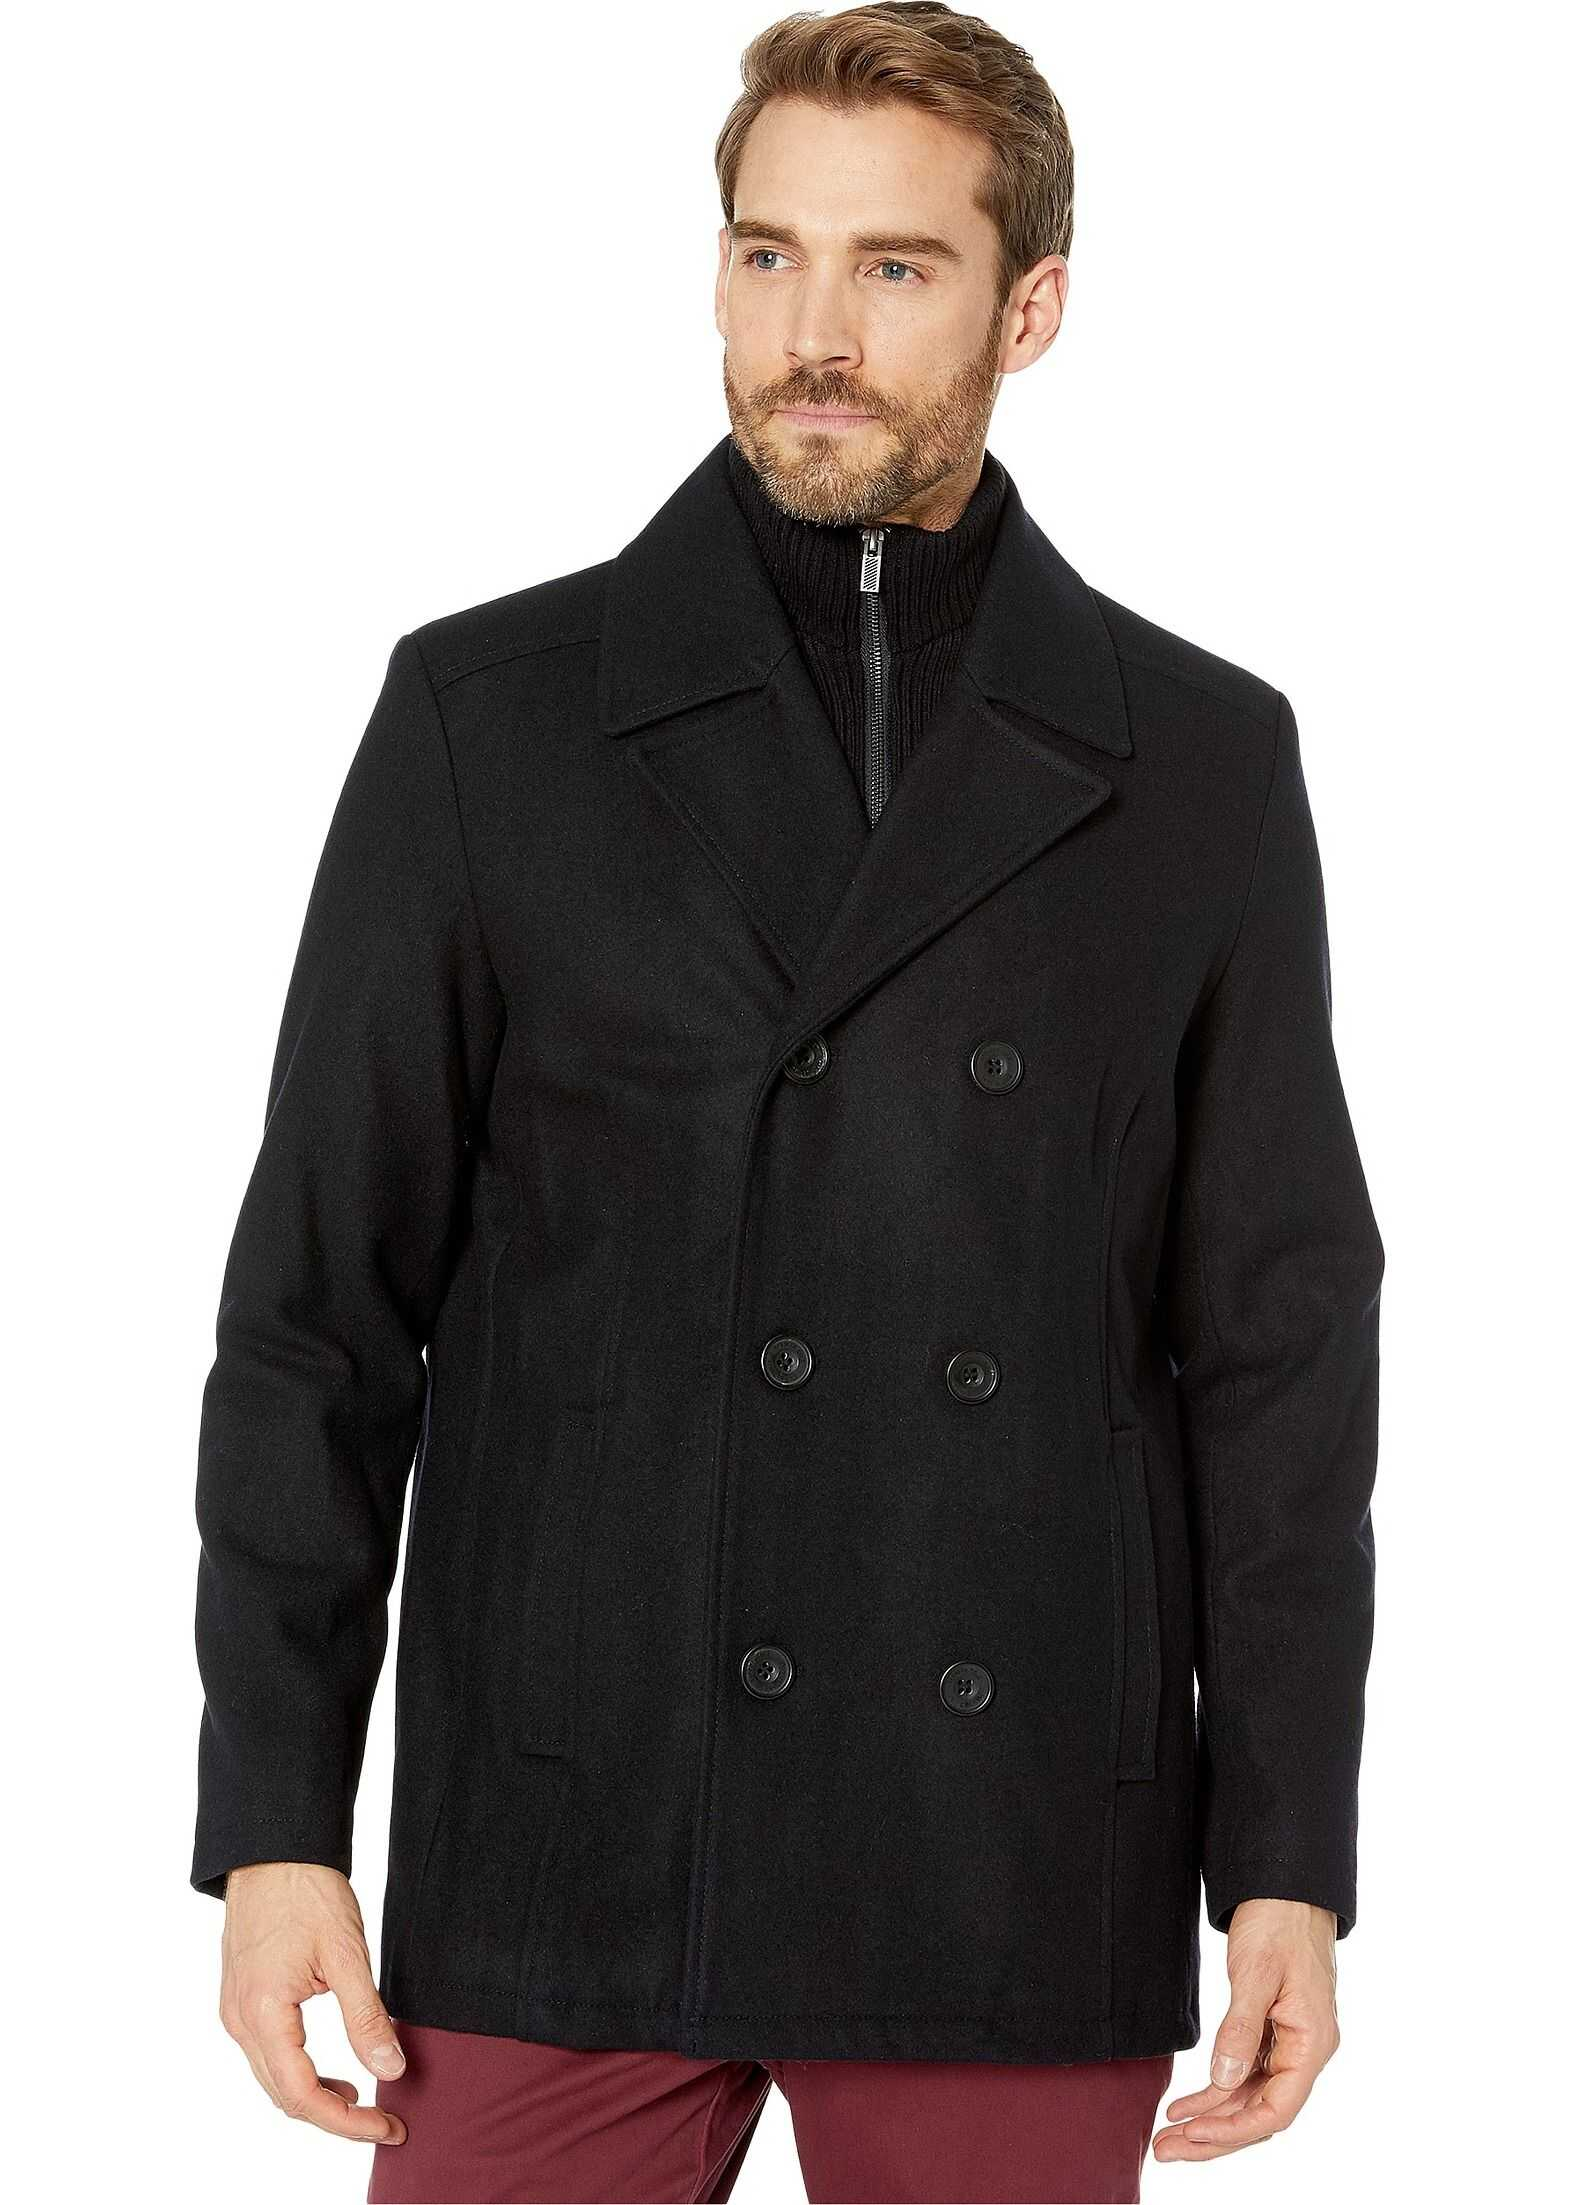 Kenneth Cole New York Remington Peacoat Navy